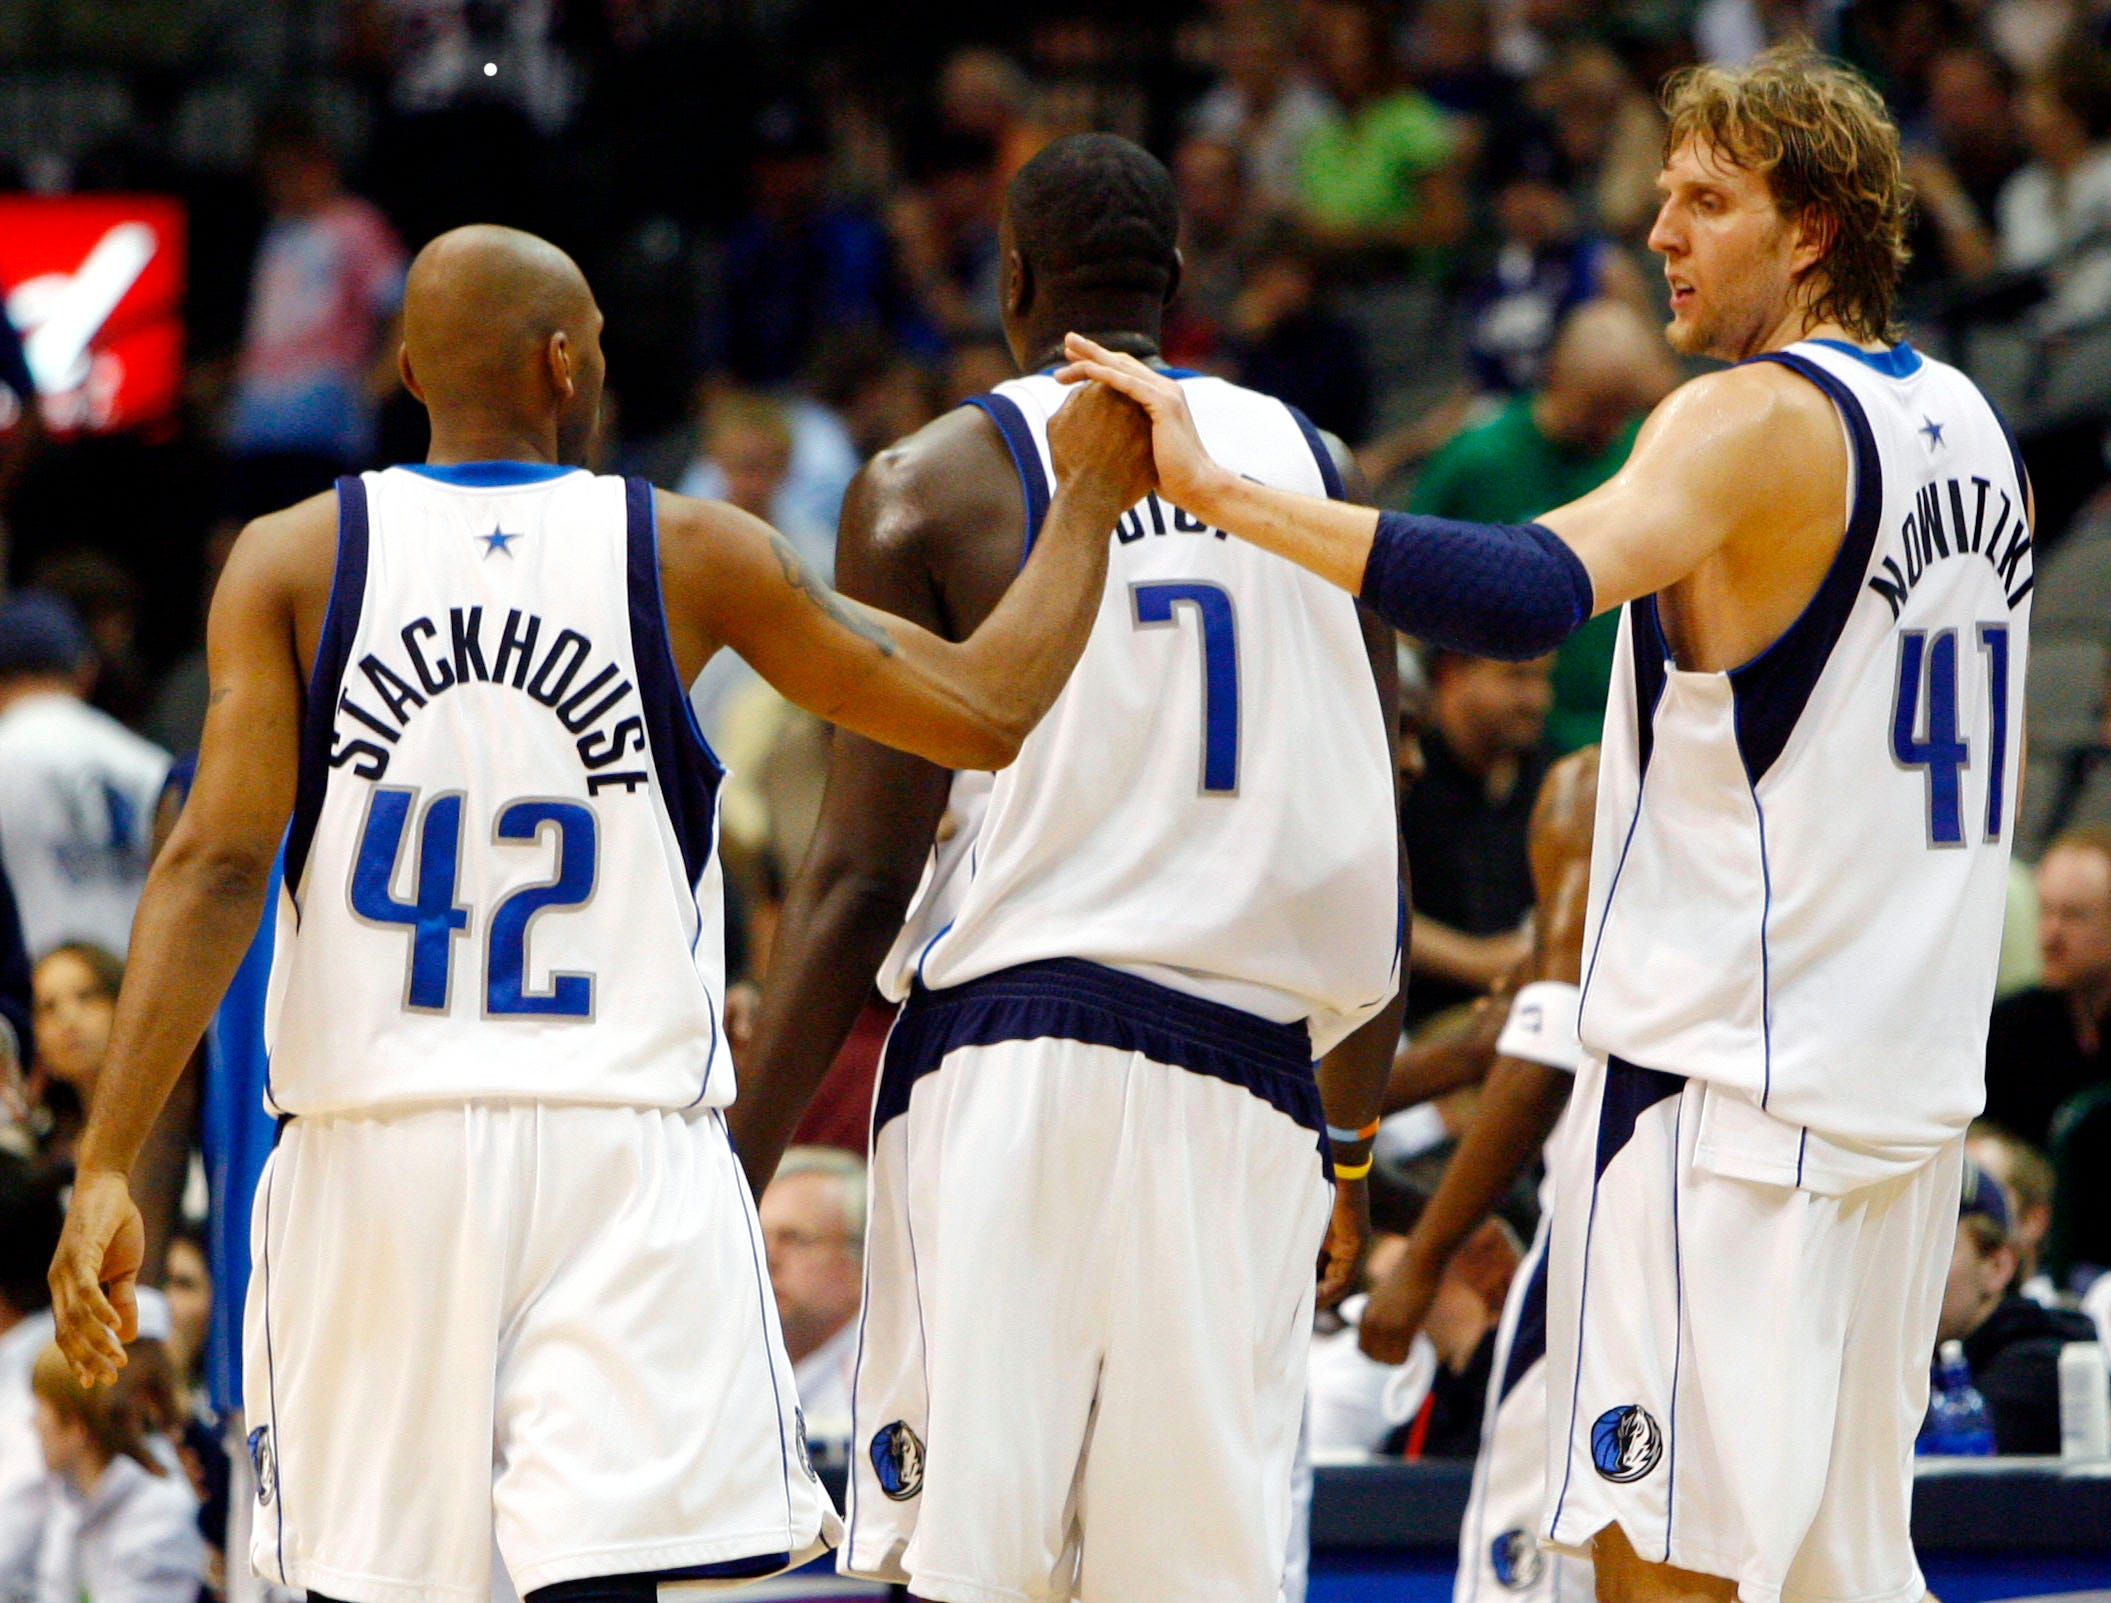 Dallas Mavericks guard Jerry Stackhouse (42) and forward Dirk Nowitzki (41), of Germany, celebrate while walking back to the bench with center DeSagana Diop (7), of Senegal, during a timeout in the second half of an NBA basketball game against the Utah Jazz on Sunday, April 16, 2006, in Dallas. Dallas won 111-95.